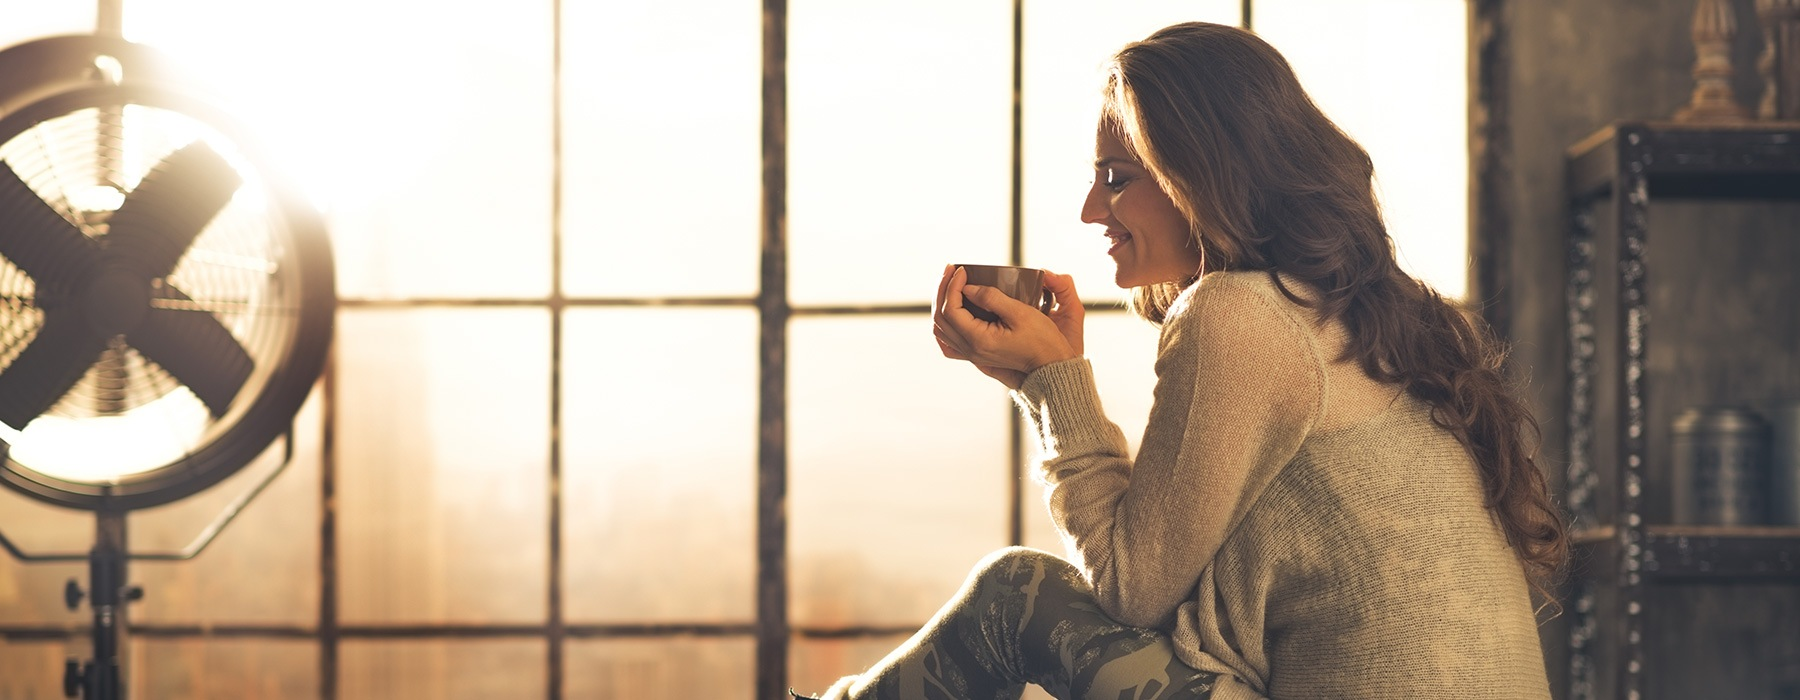 lifestyle image of a woman holding a cup of coffee beside a large window